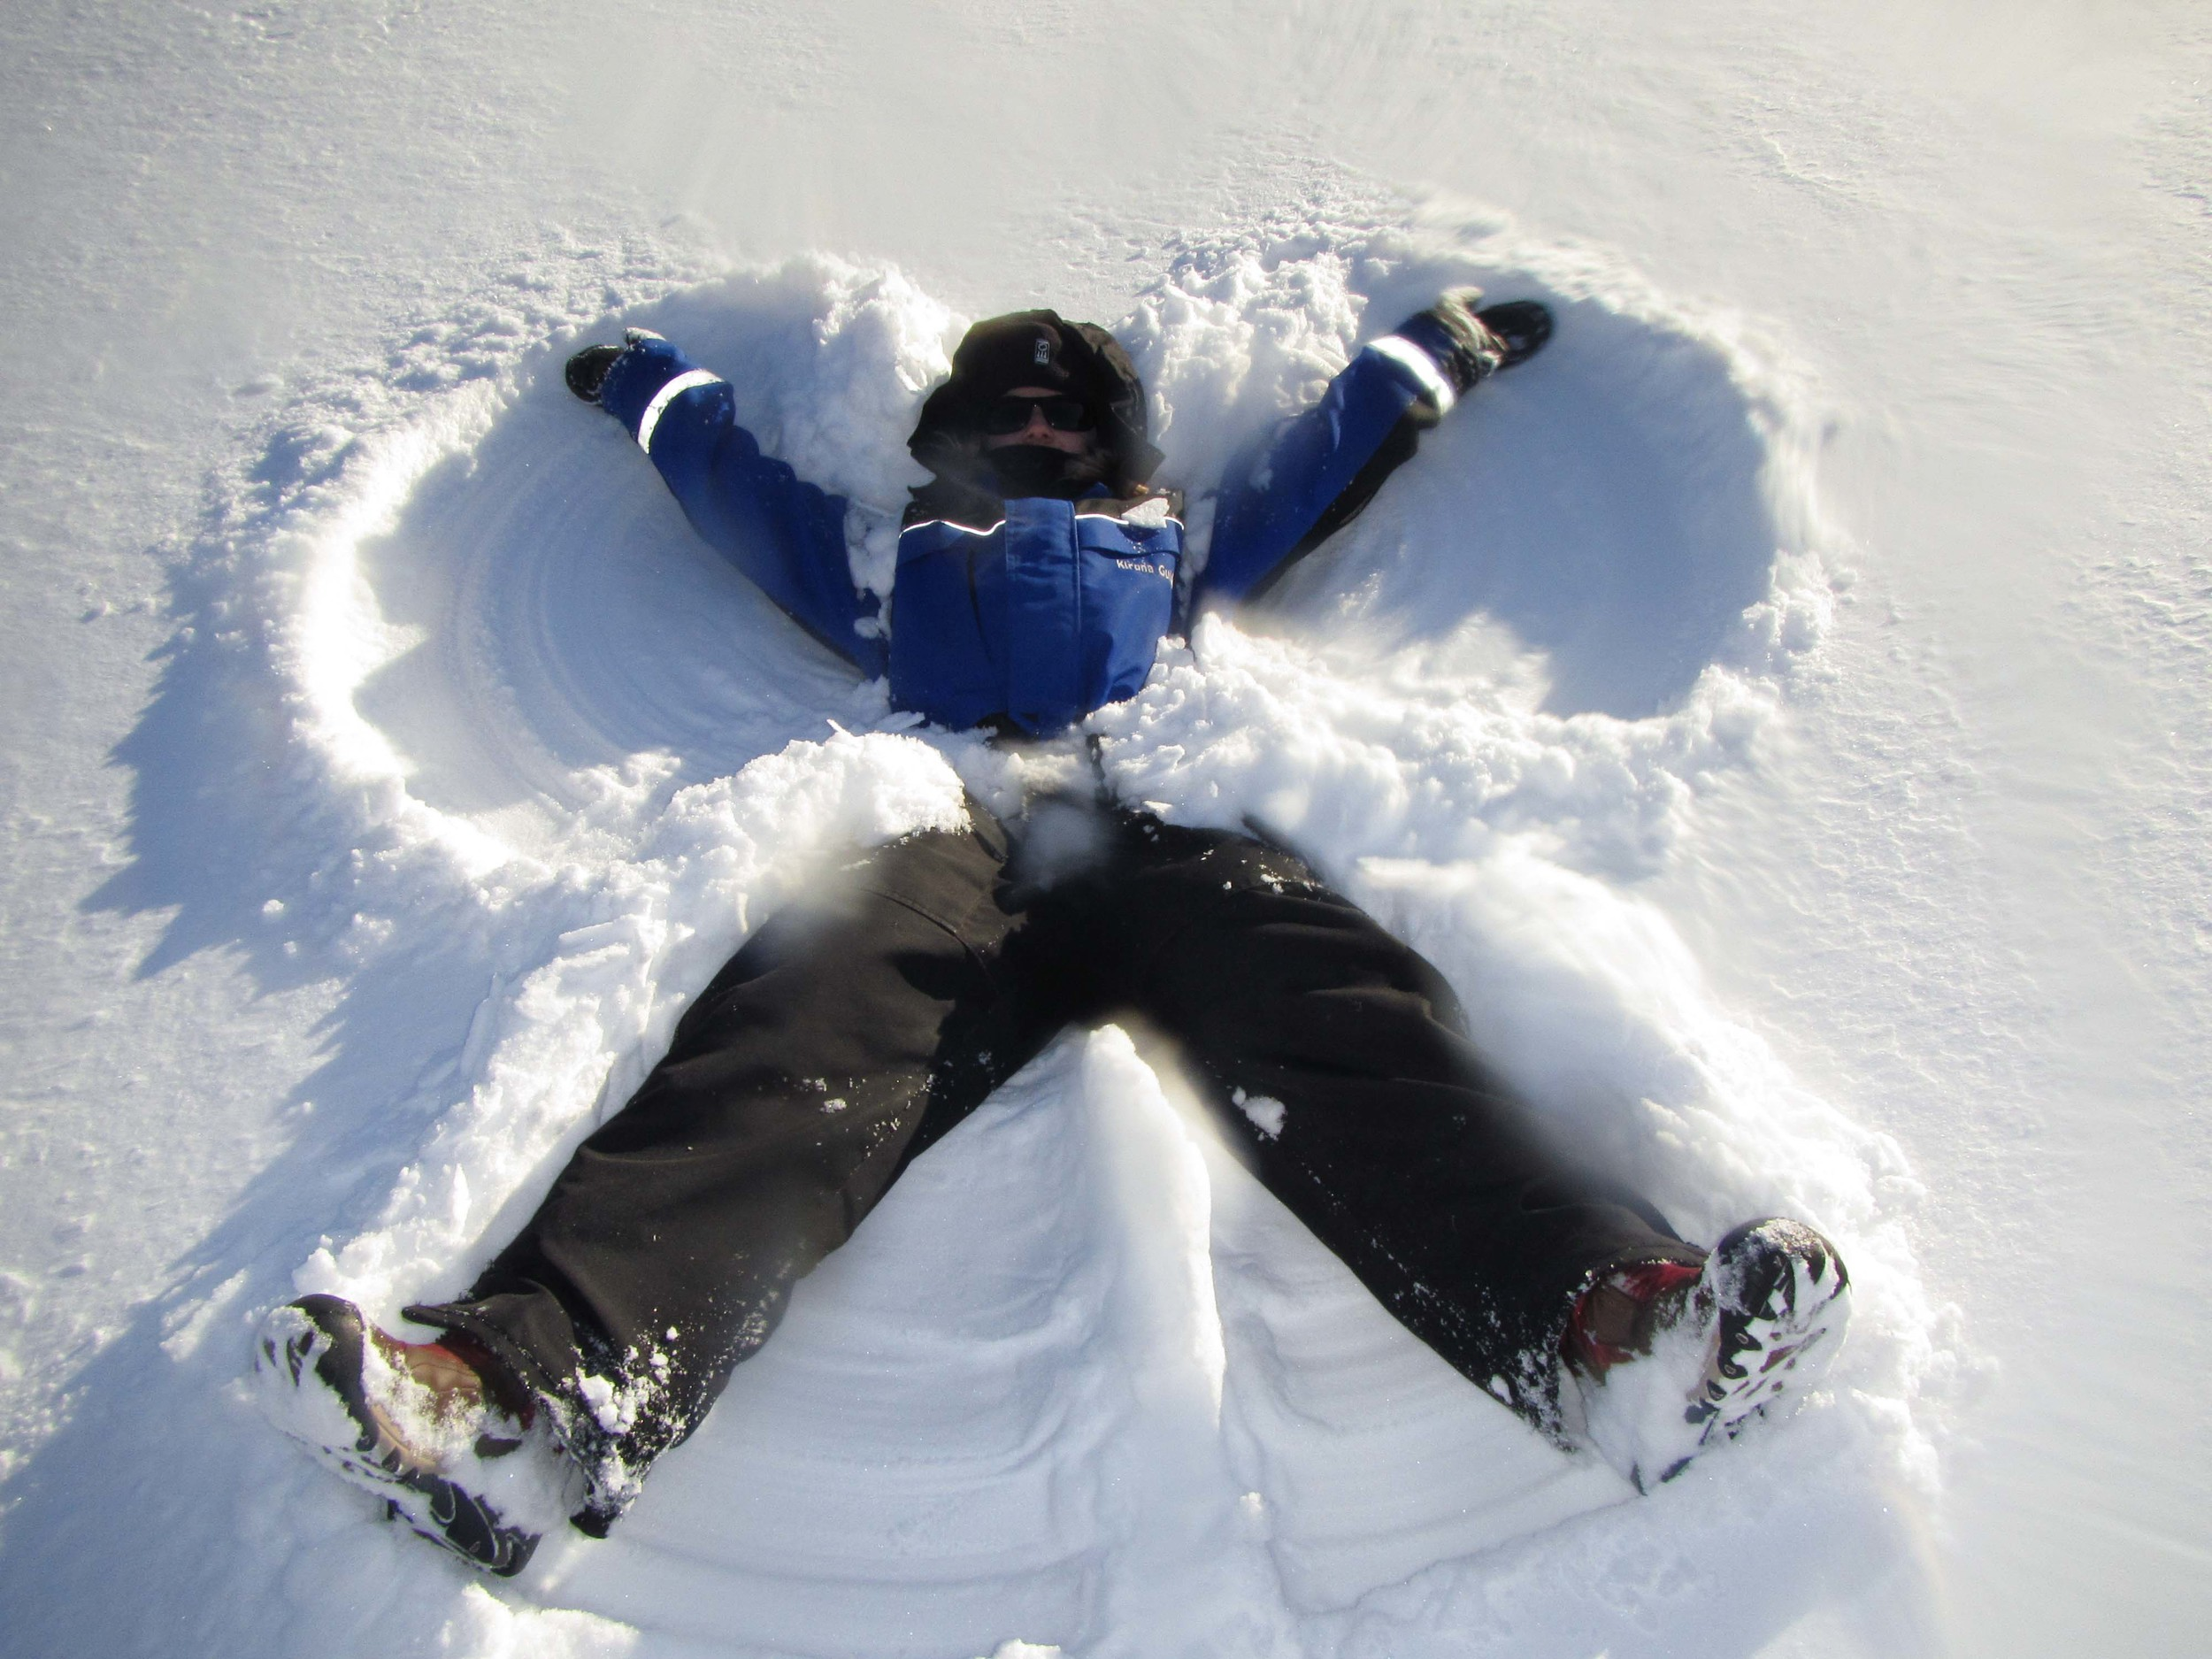 Making snow angels in the fresh snow